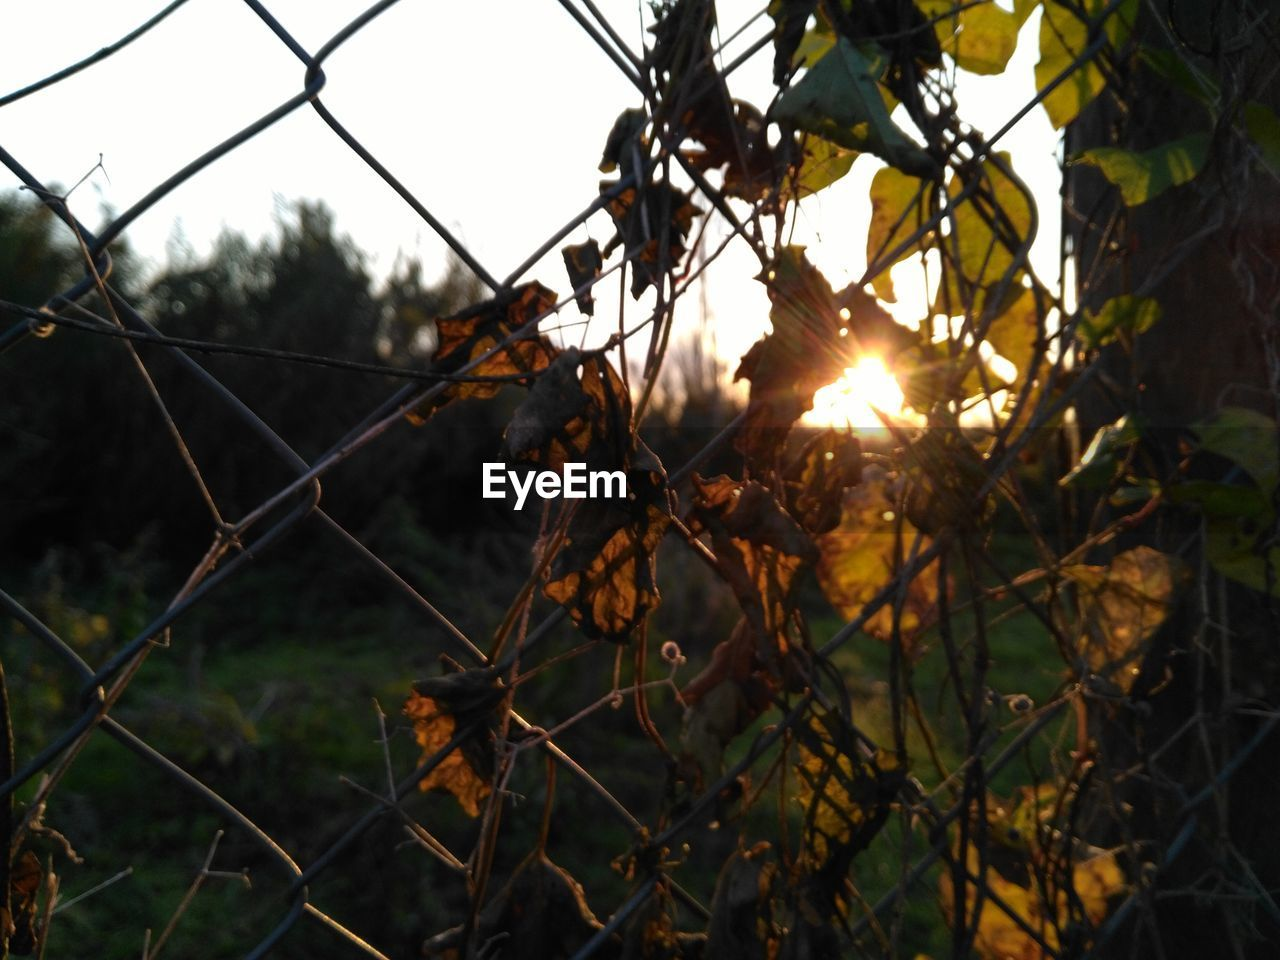 Close-Up Of Chainlink Fence Against Sunset Sky